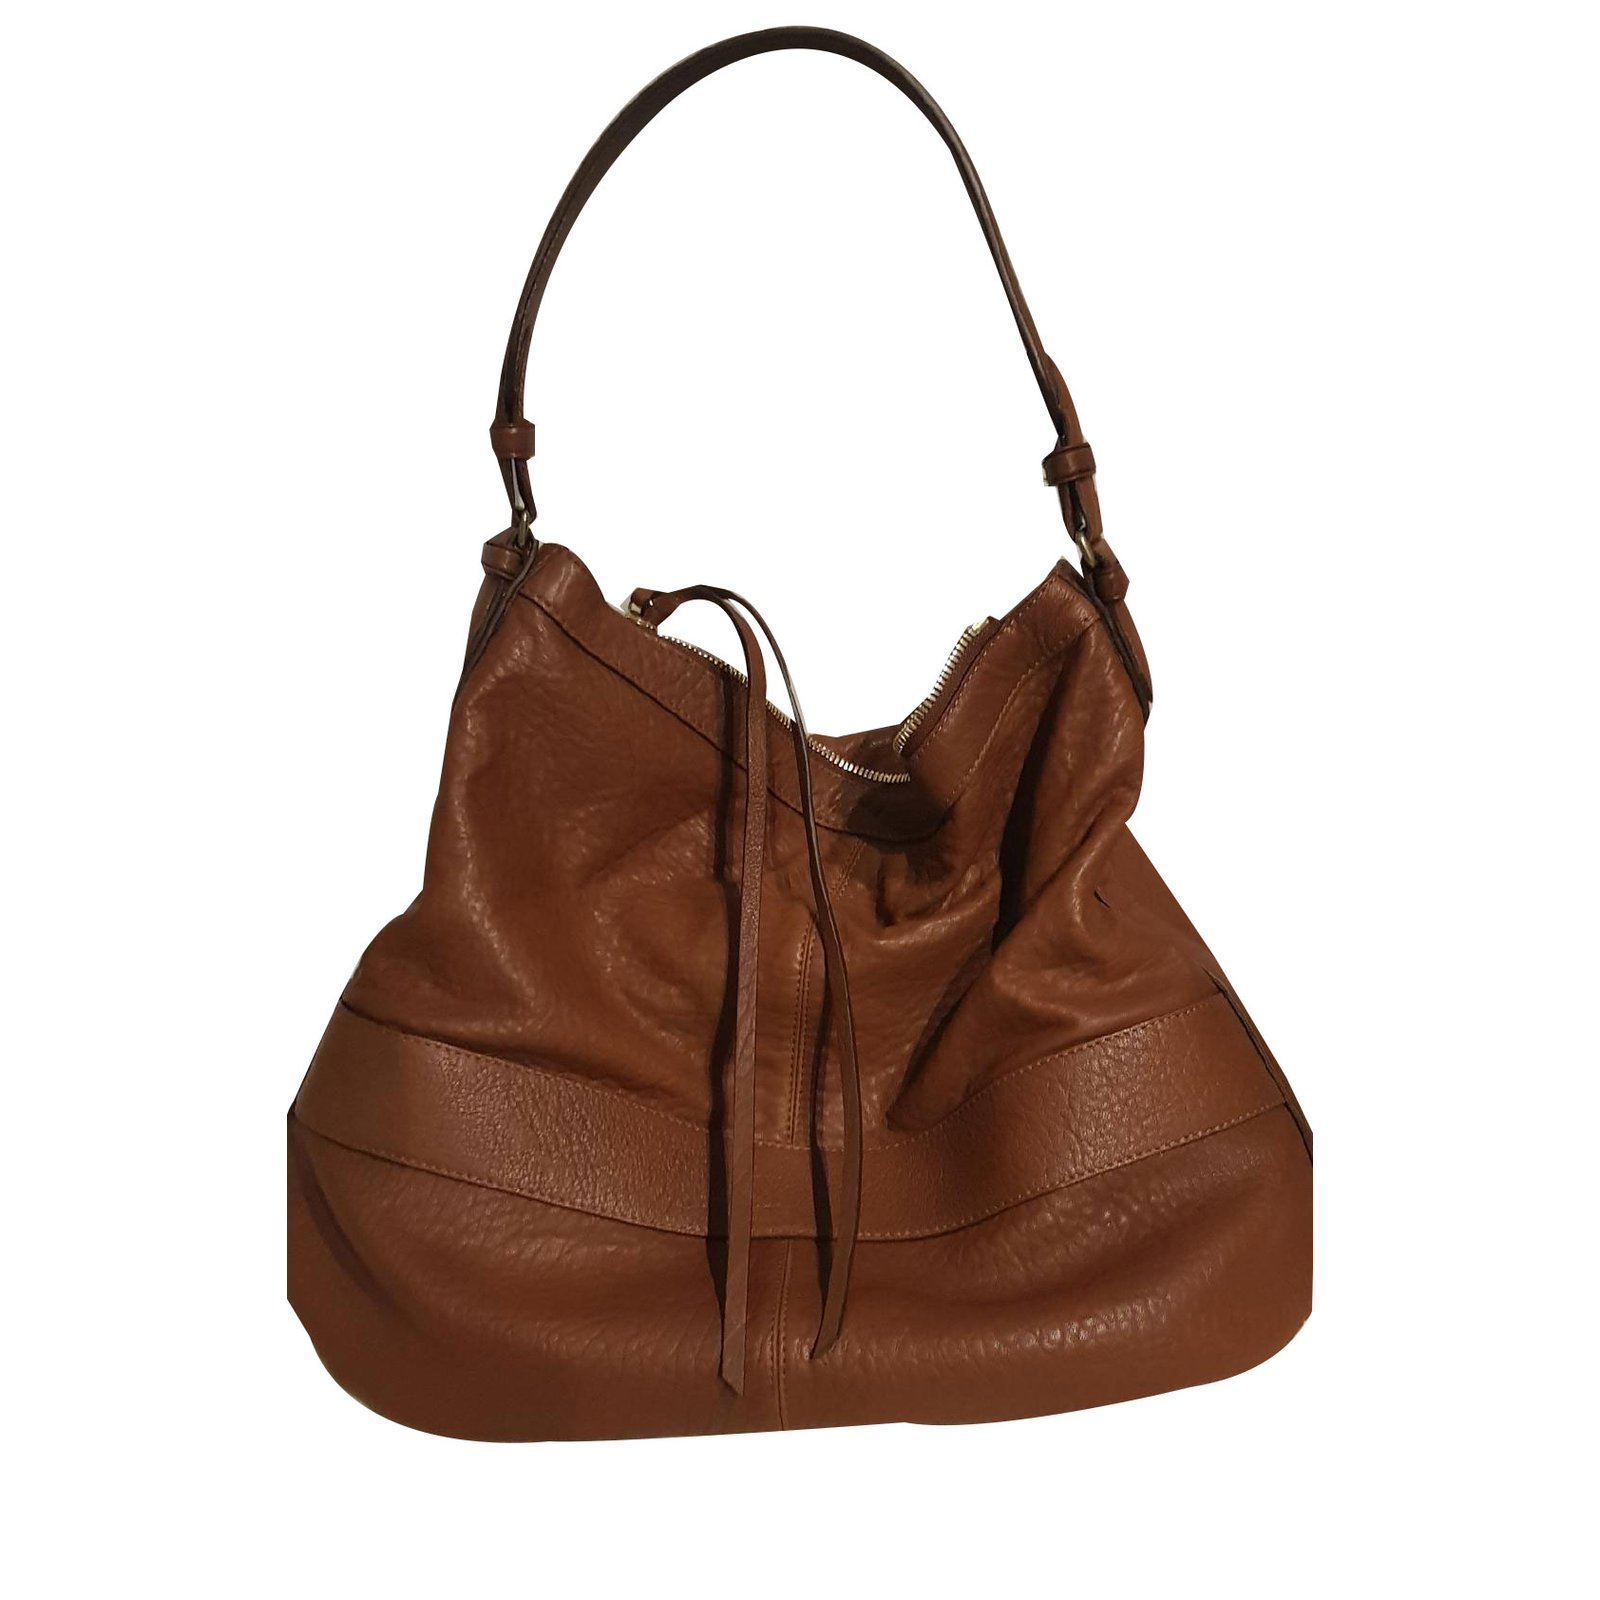 Gerard Darel Handbags Leather Brown Ref 59620